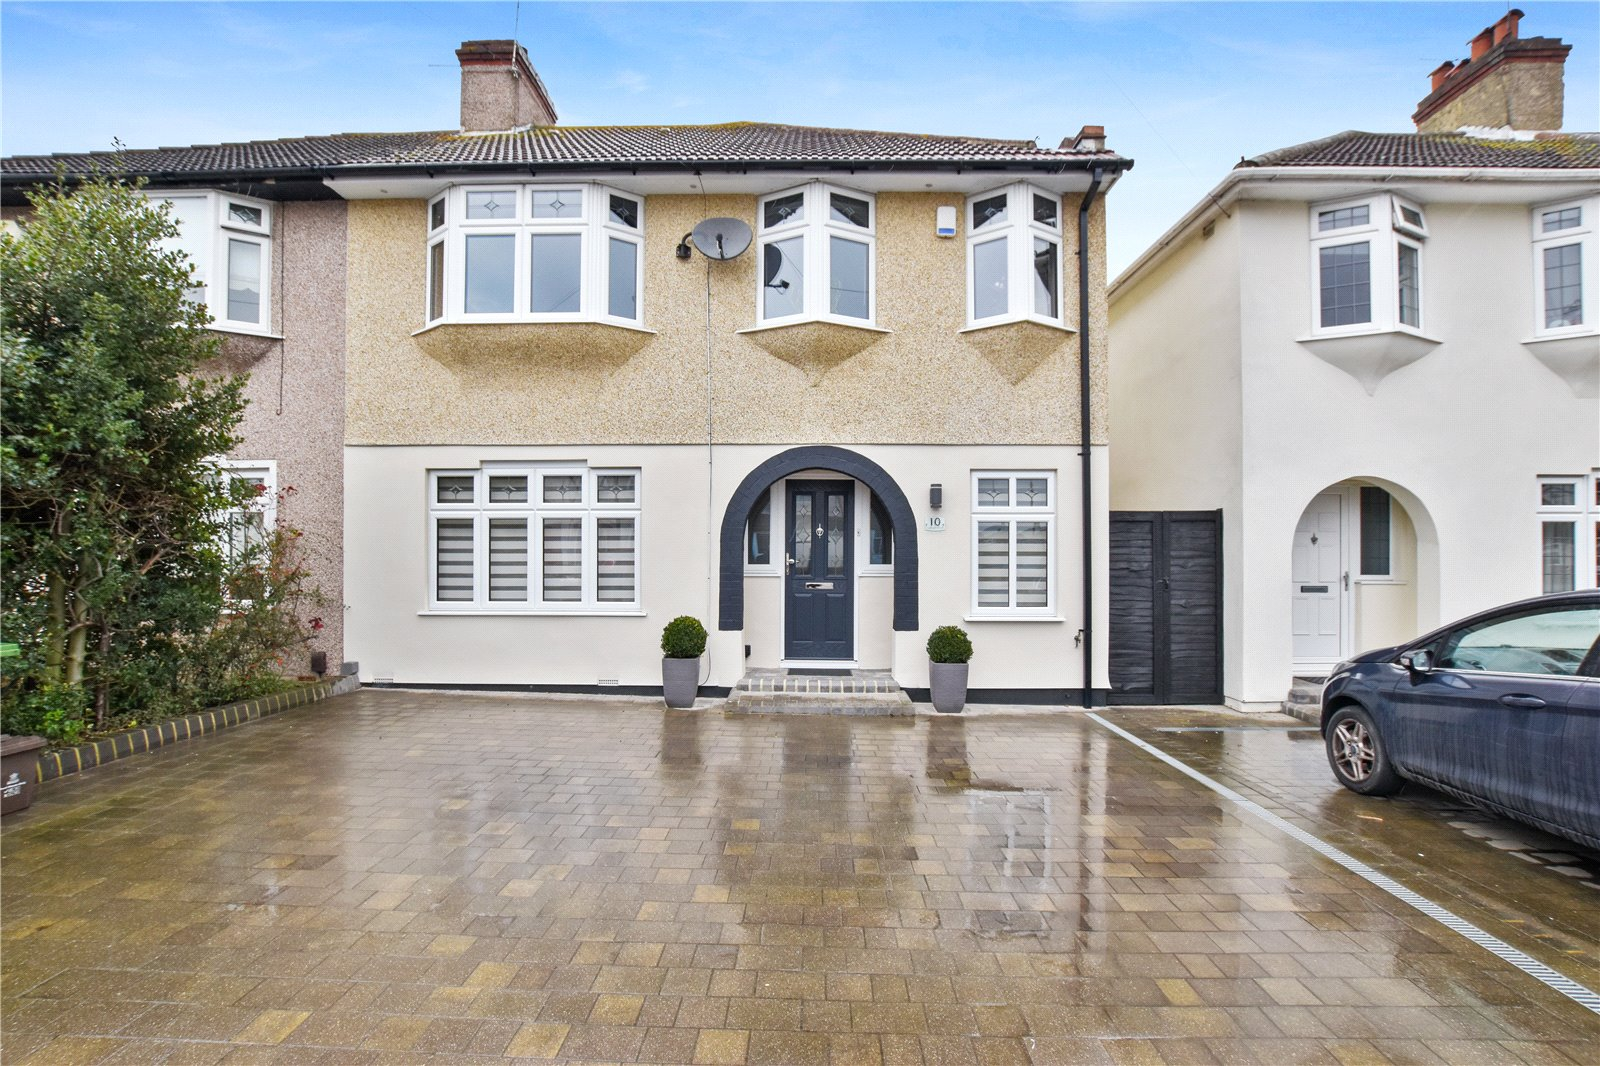 Chessington Avenue, Bexleyheath, Kent, DA7